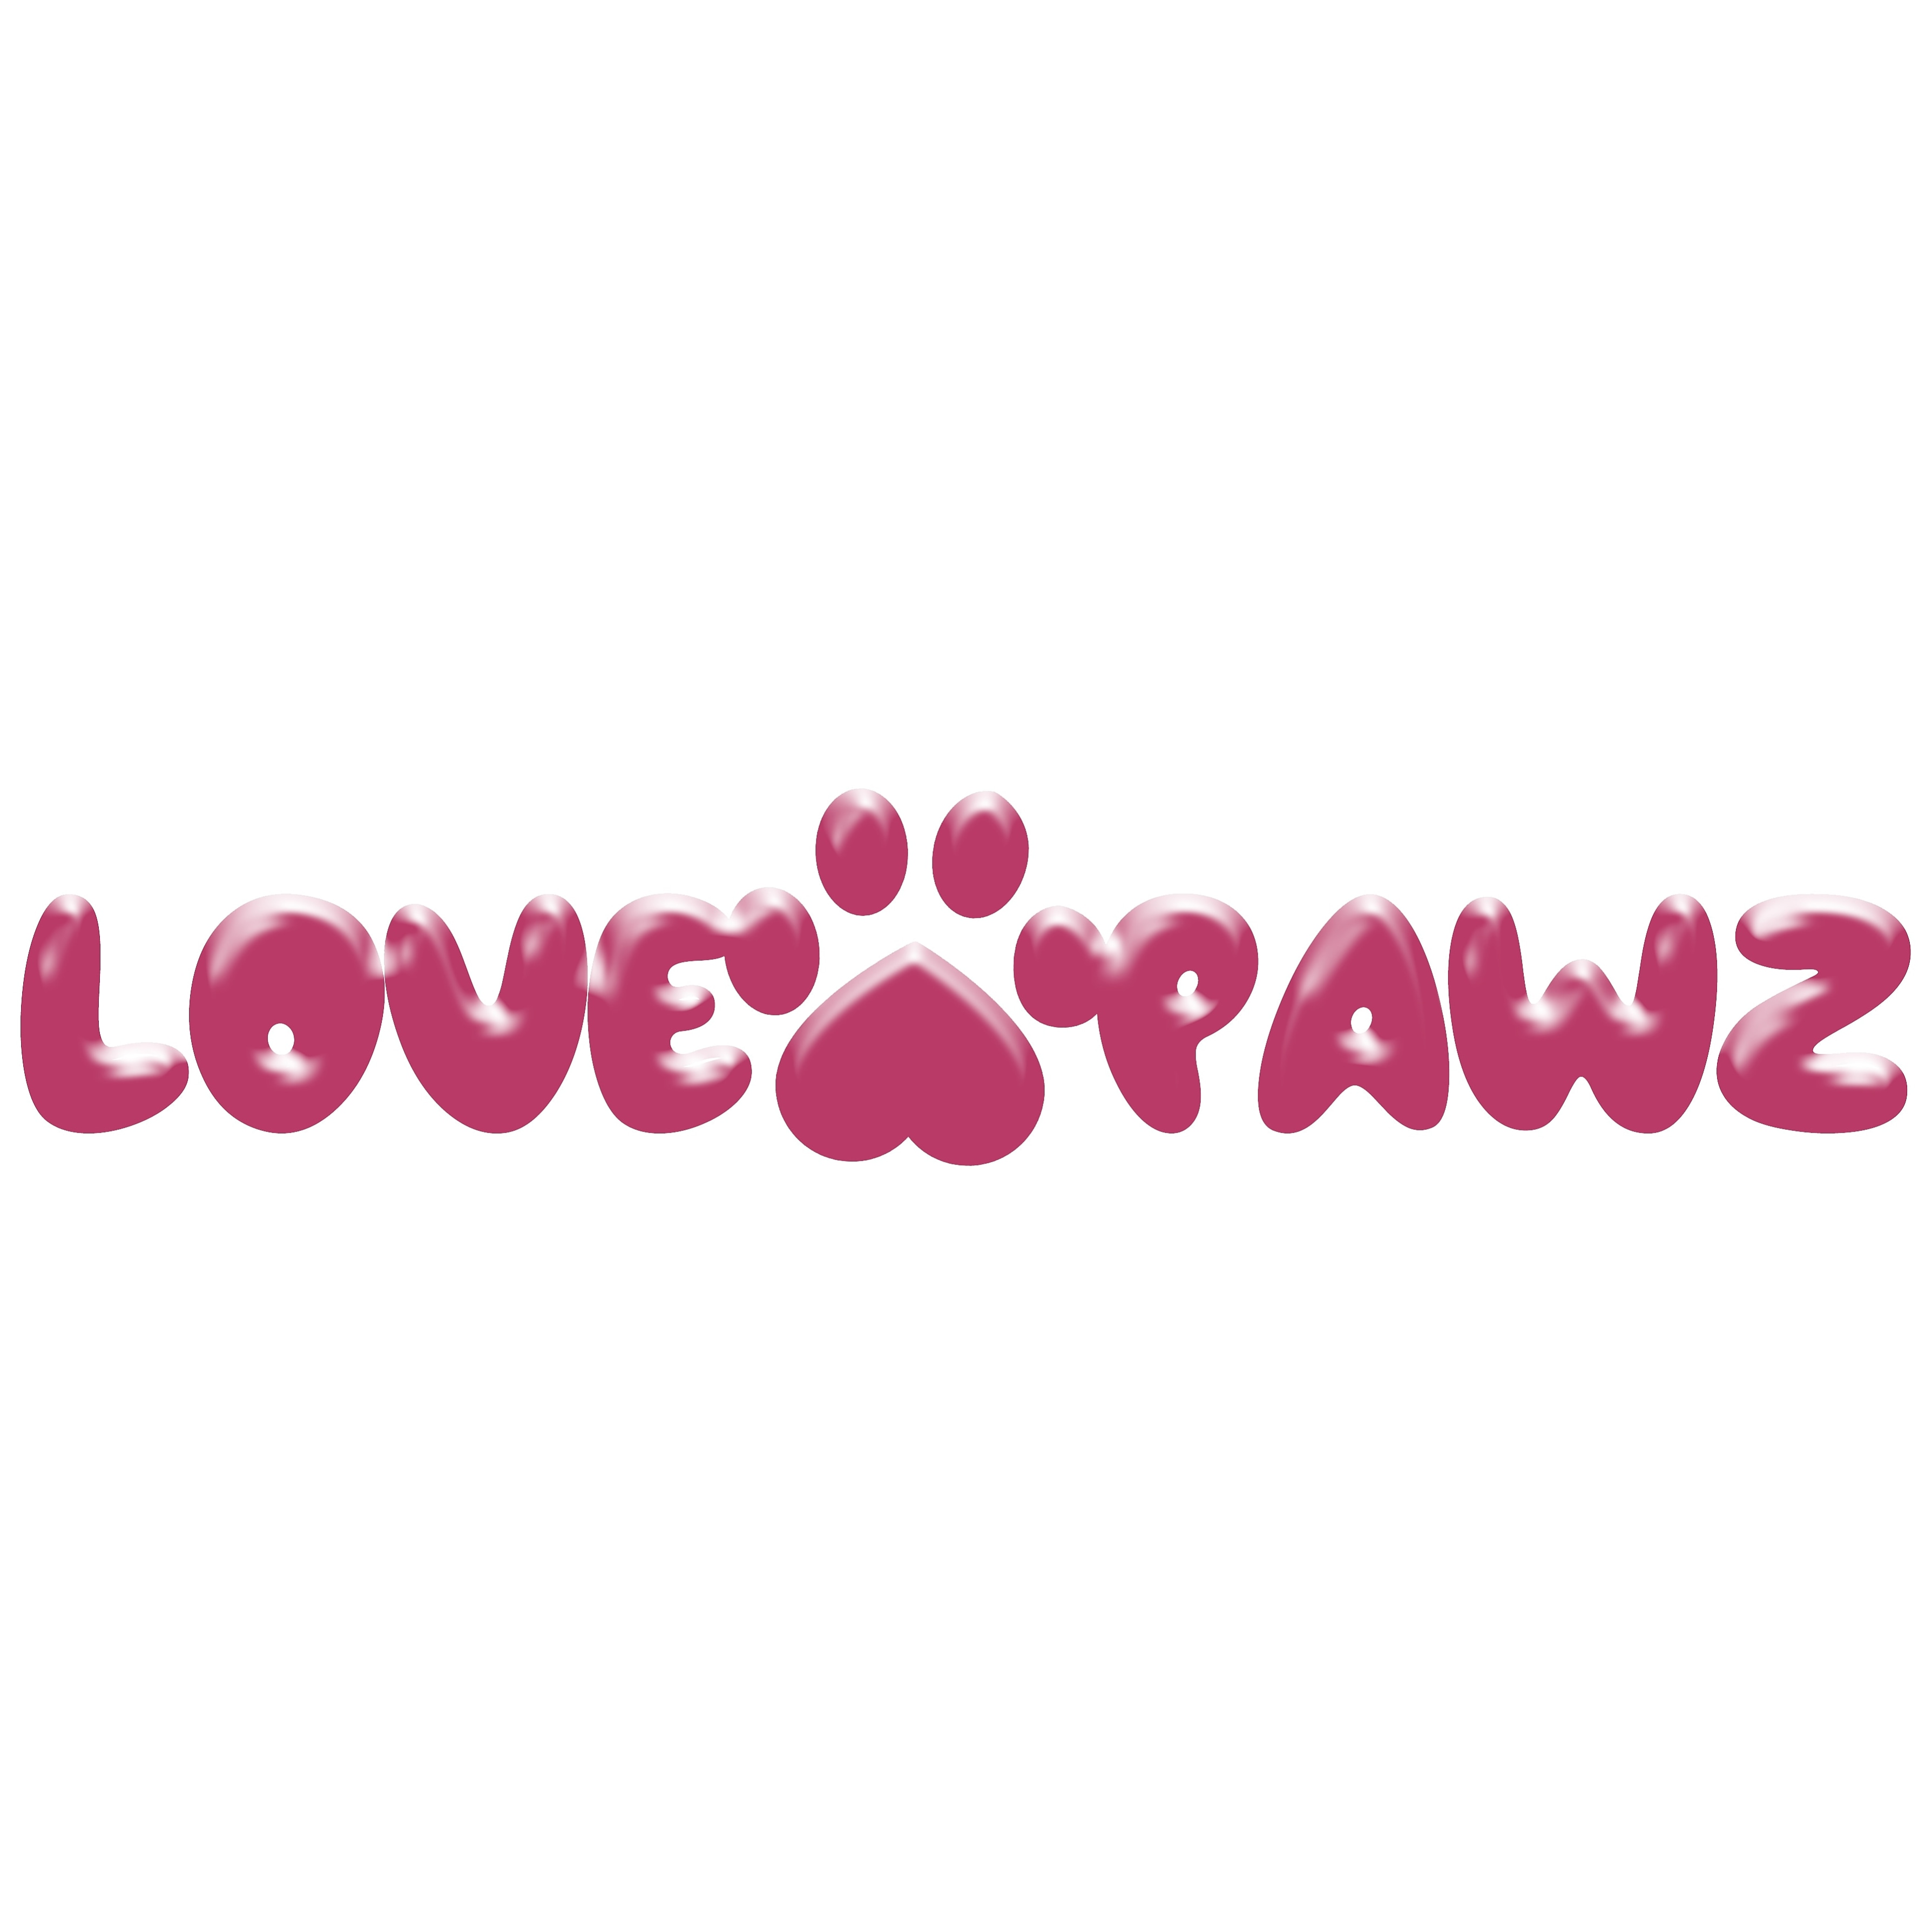 Online Store Lovepawz Offers Innovative and Attractive Product Line for Pets